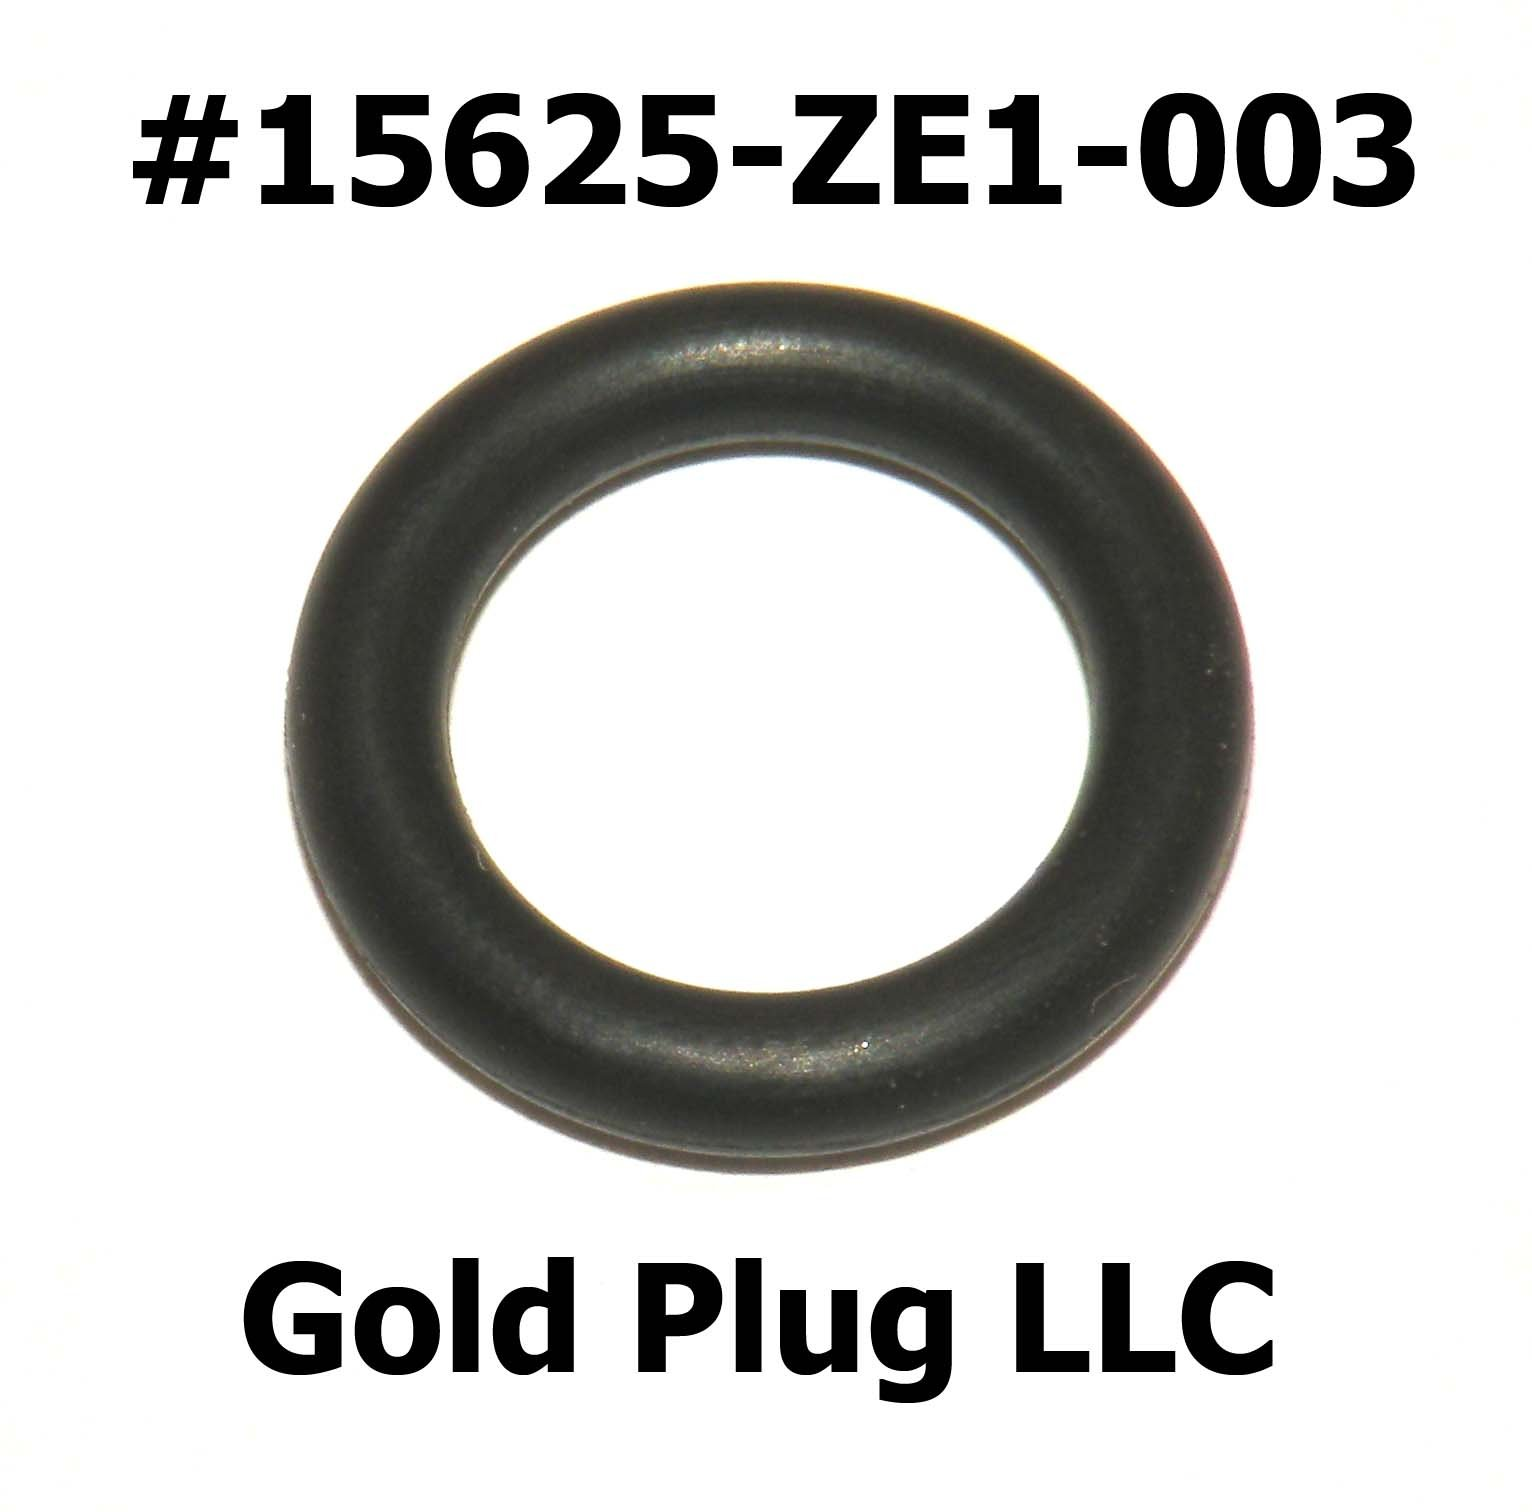 Honda / Briggs and Stratton Replacement O-Ring 15625-ZE1-003